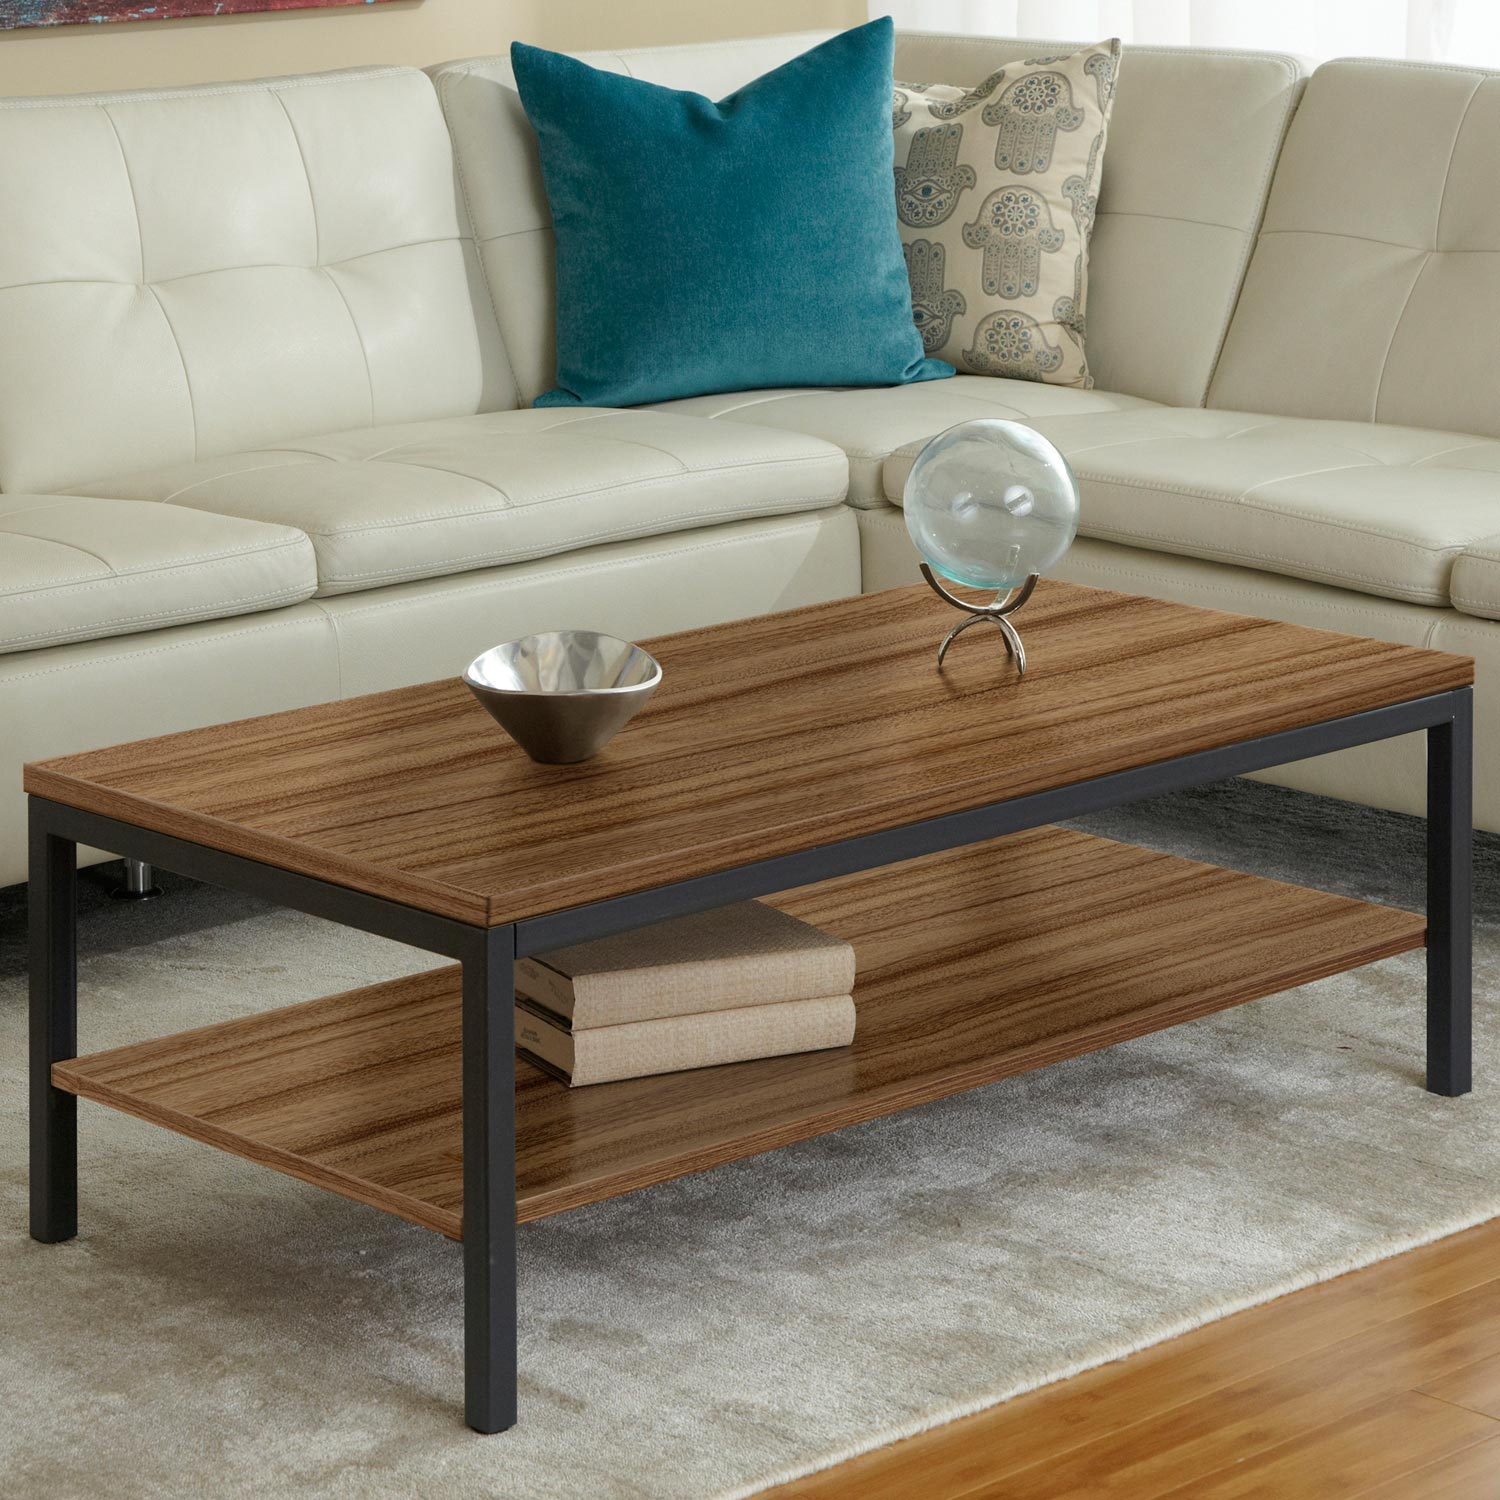 Parson Rectangular Coffee Table - Shelf, Steel Frame, Walnut